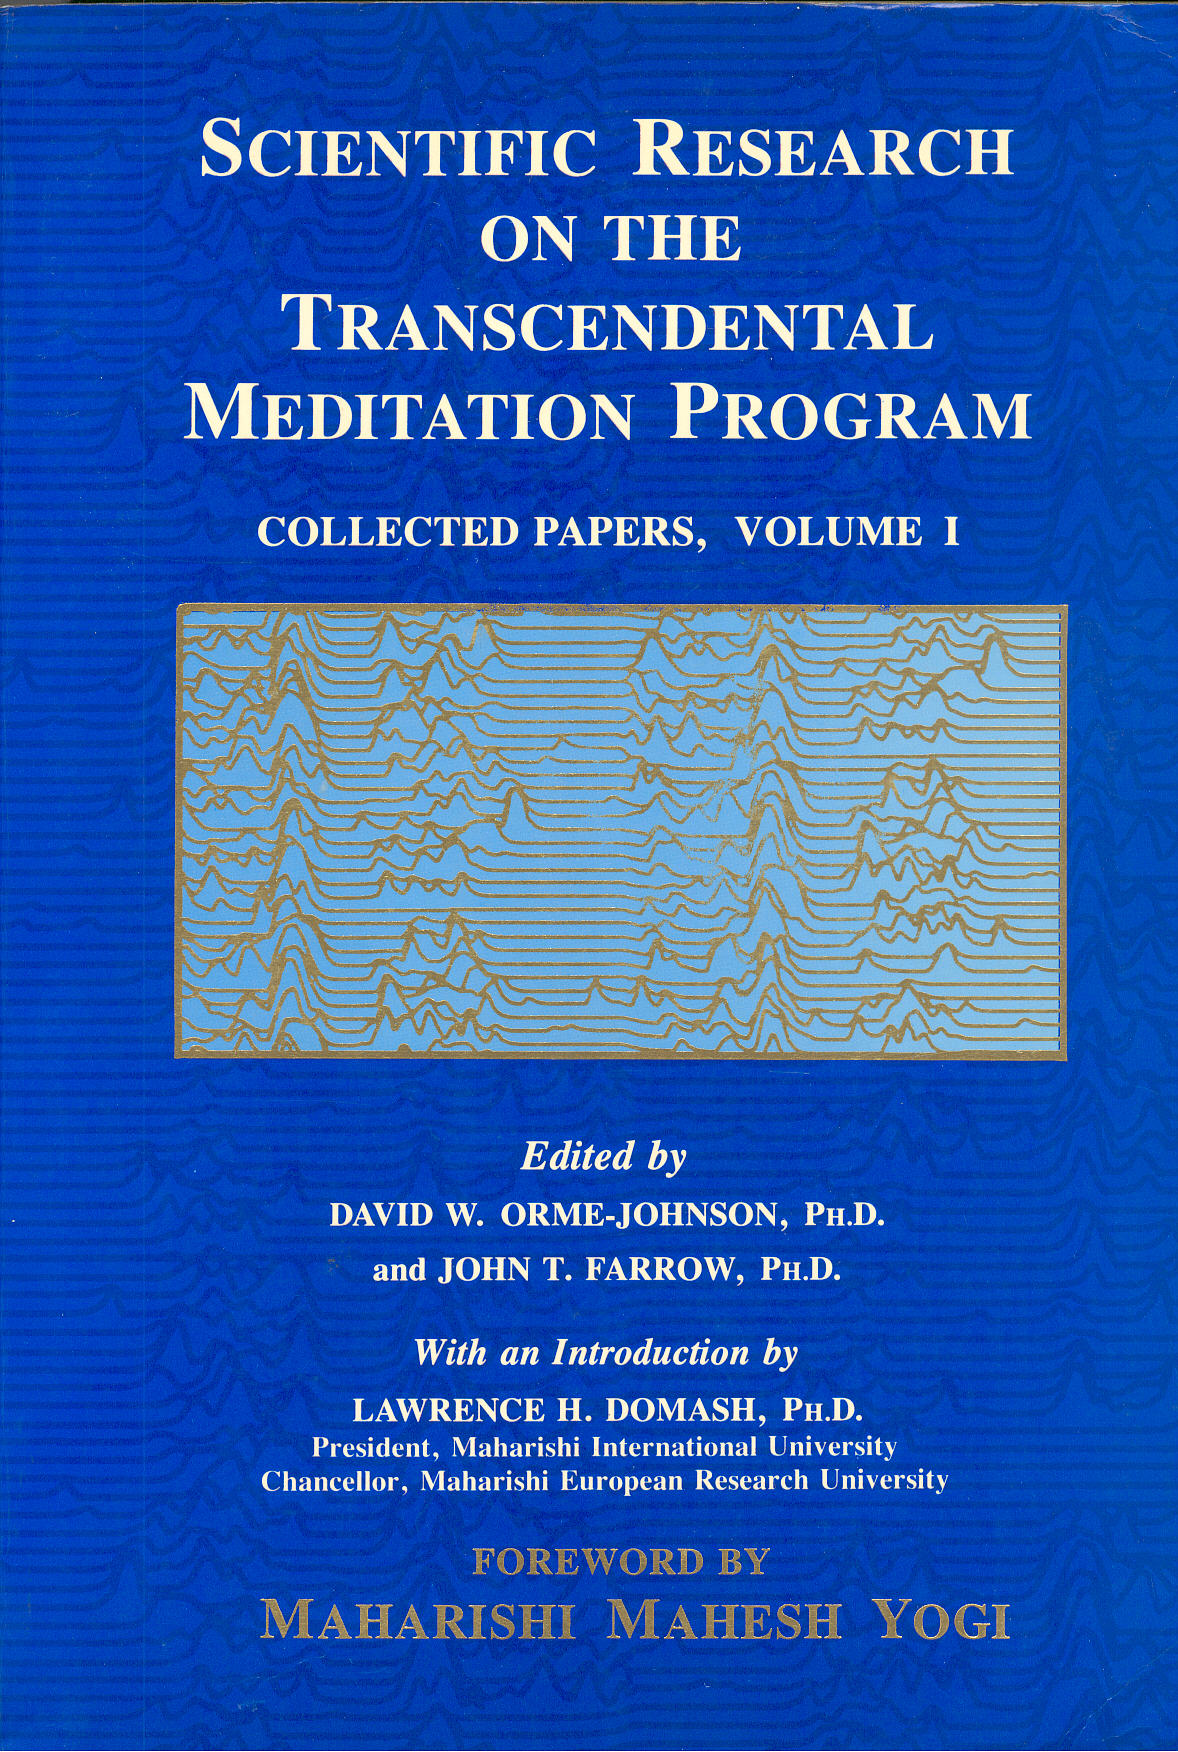 scientific research transcendental meditation program collected papers